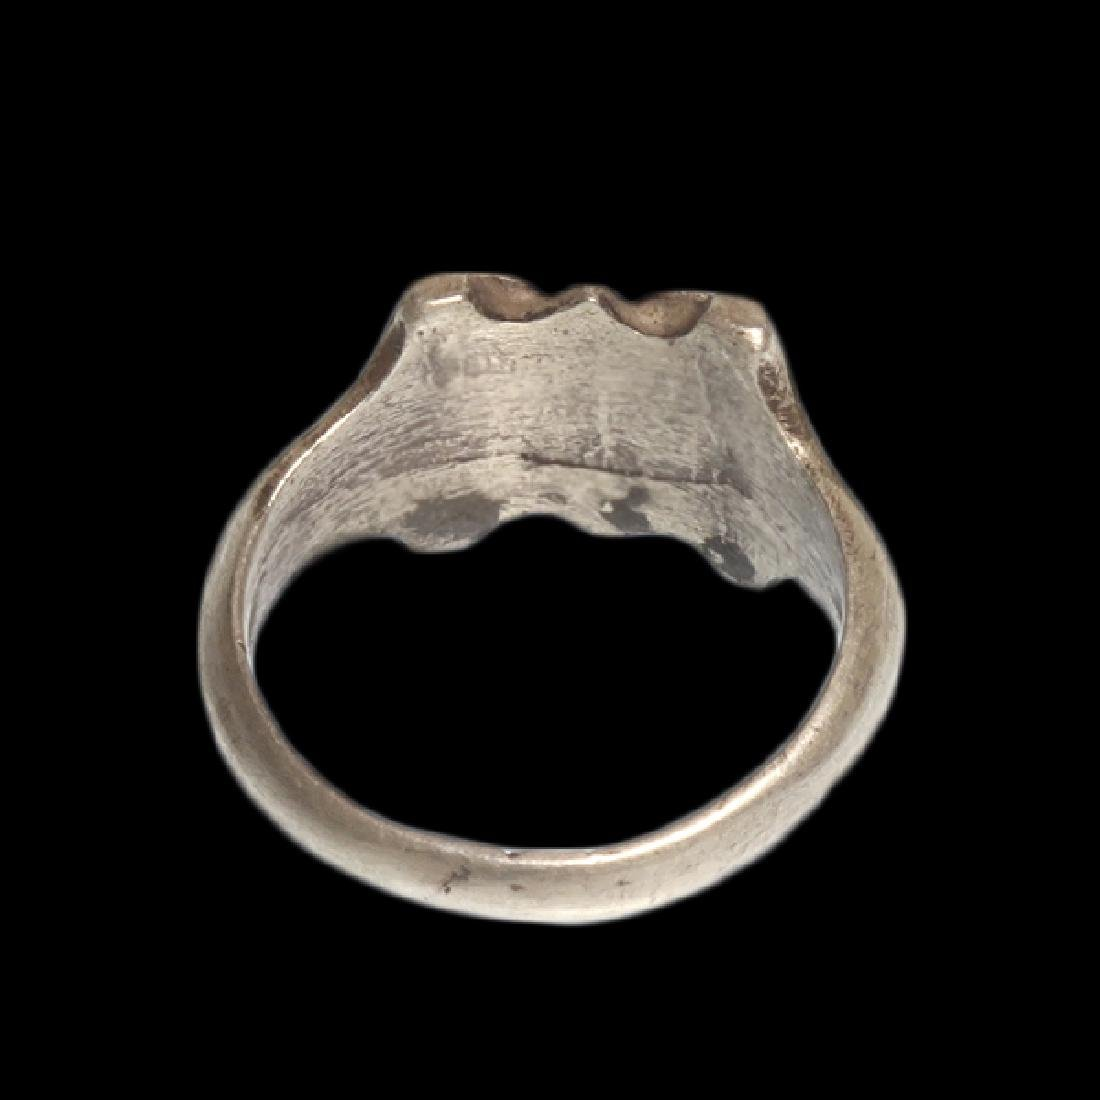 Viking Silver Ring with Spiral Patterns, c. 10th - 6